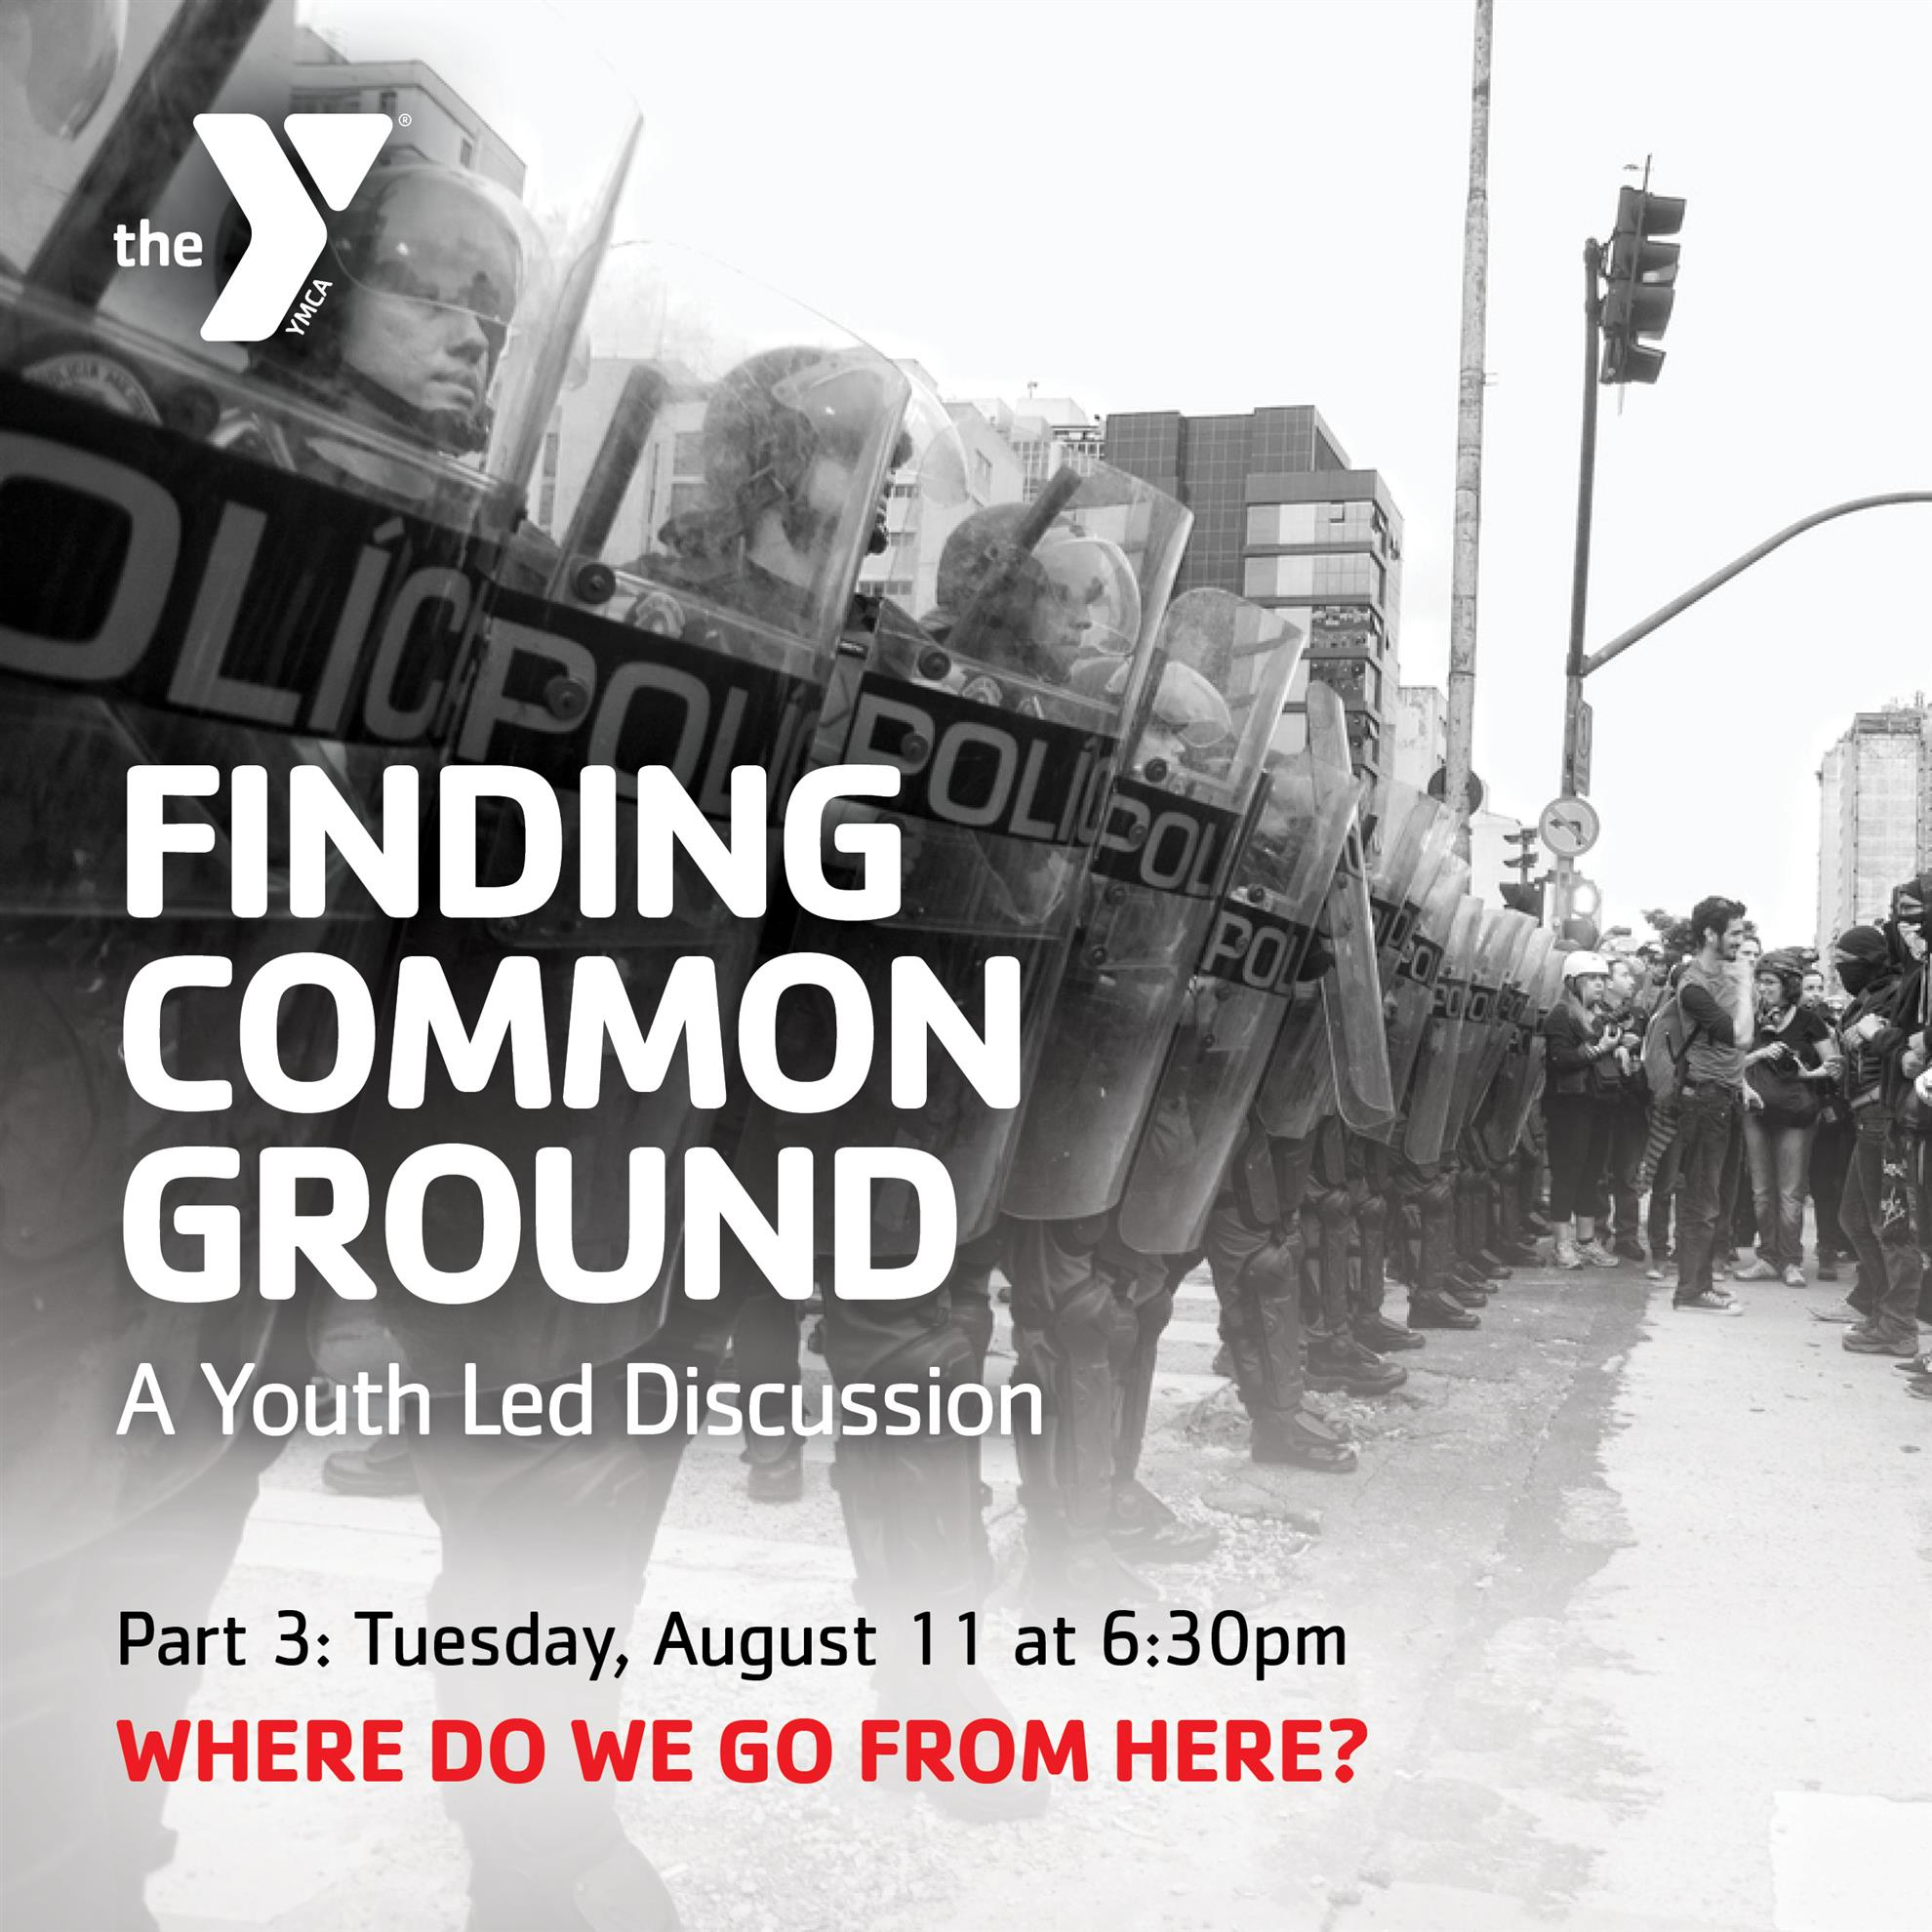 Common Ground - Where Do We Go From Here?